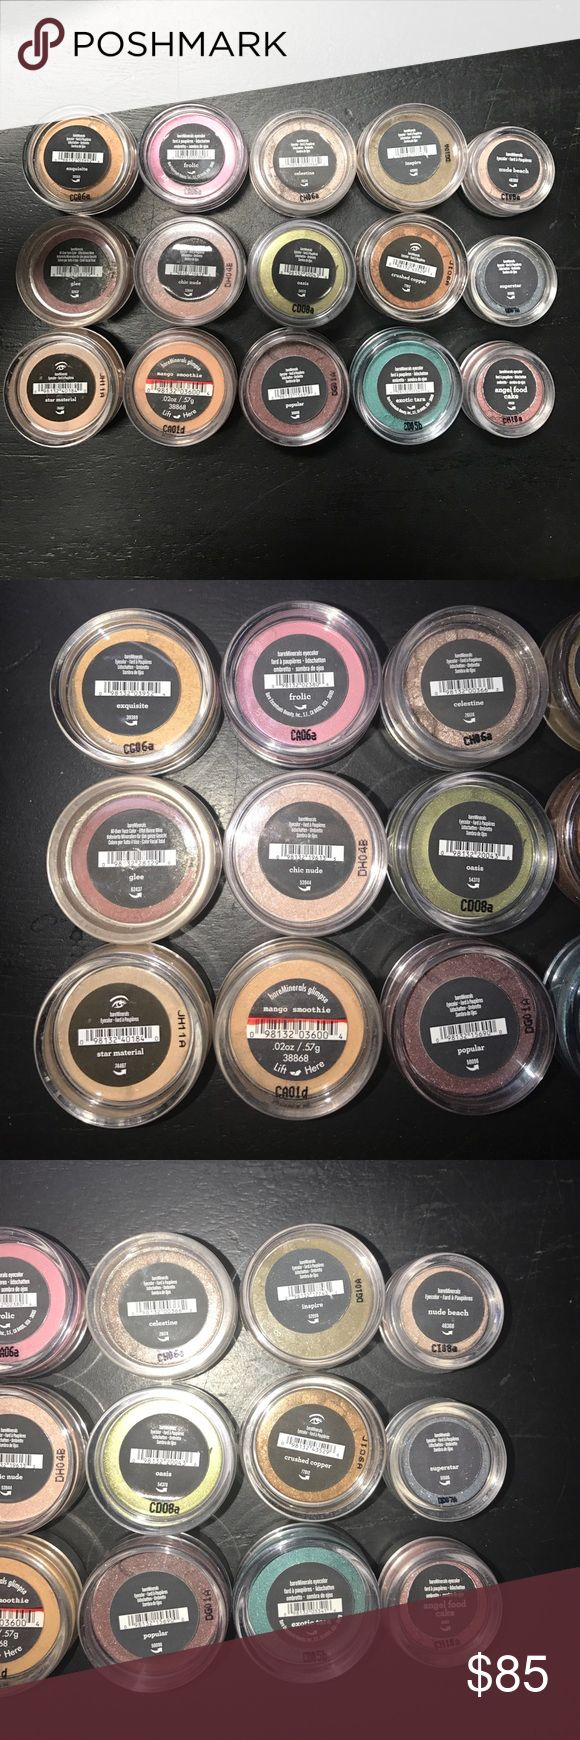 Bare Minerals Loose Eyeshadow Bare Minerals Loose Eyeshadow, all brand new never been opened! You get all 15 eye shadows! Top Row going horizontally: Exquisite, Frolic, Celestine, Inspire, Nude Beach. Second Row: Glee, Chic Nude, Oasis, Crushed Copper, Superstar. Third Row: Star Material, Mango Smoothie, Popular, Exotic Tara, Angel Food Cake. bareMinerals Makeup Eyeshadow